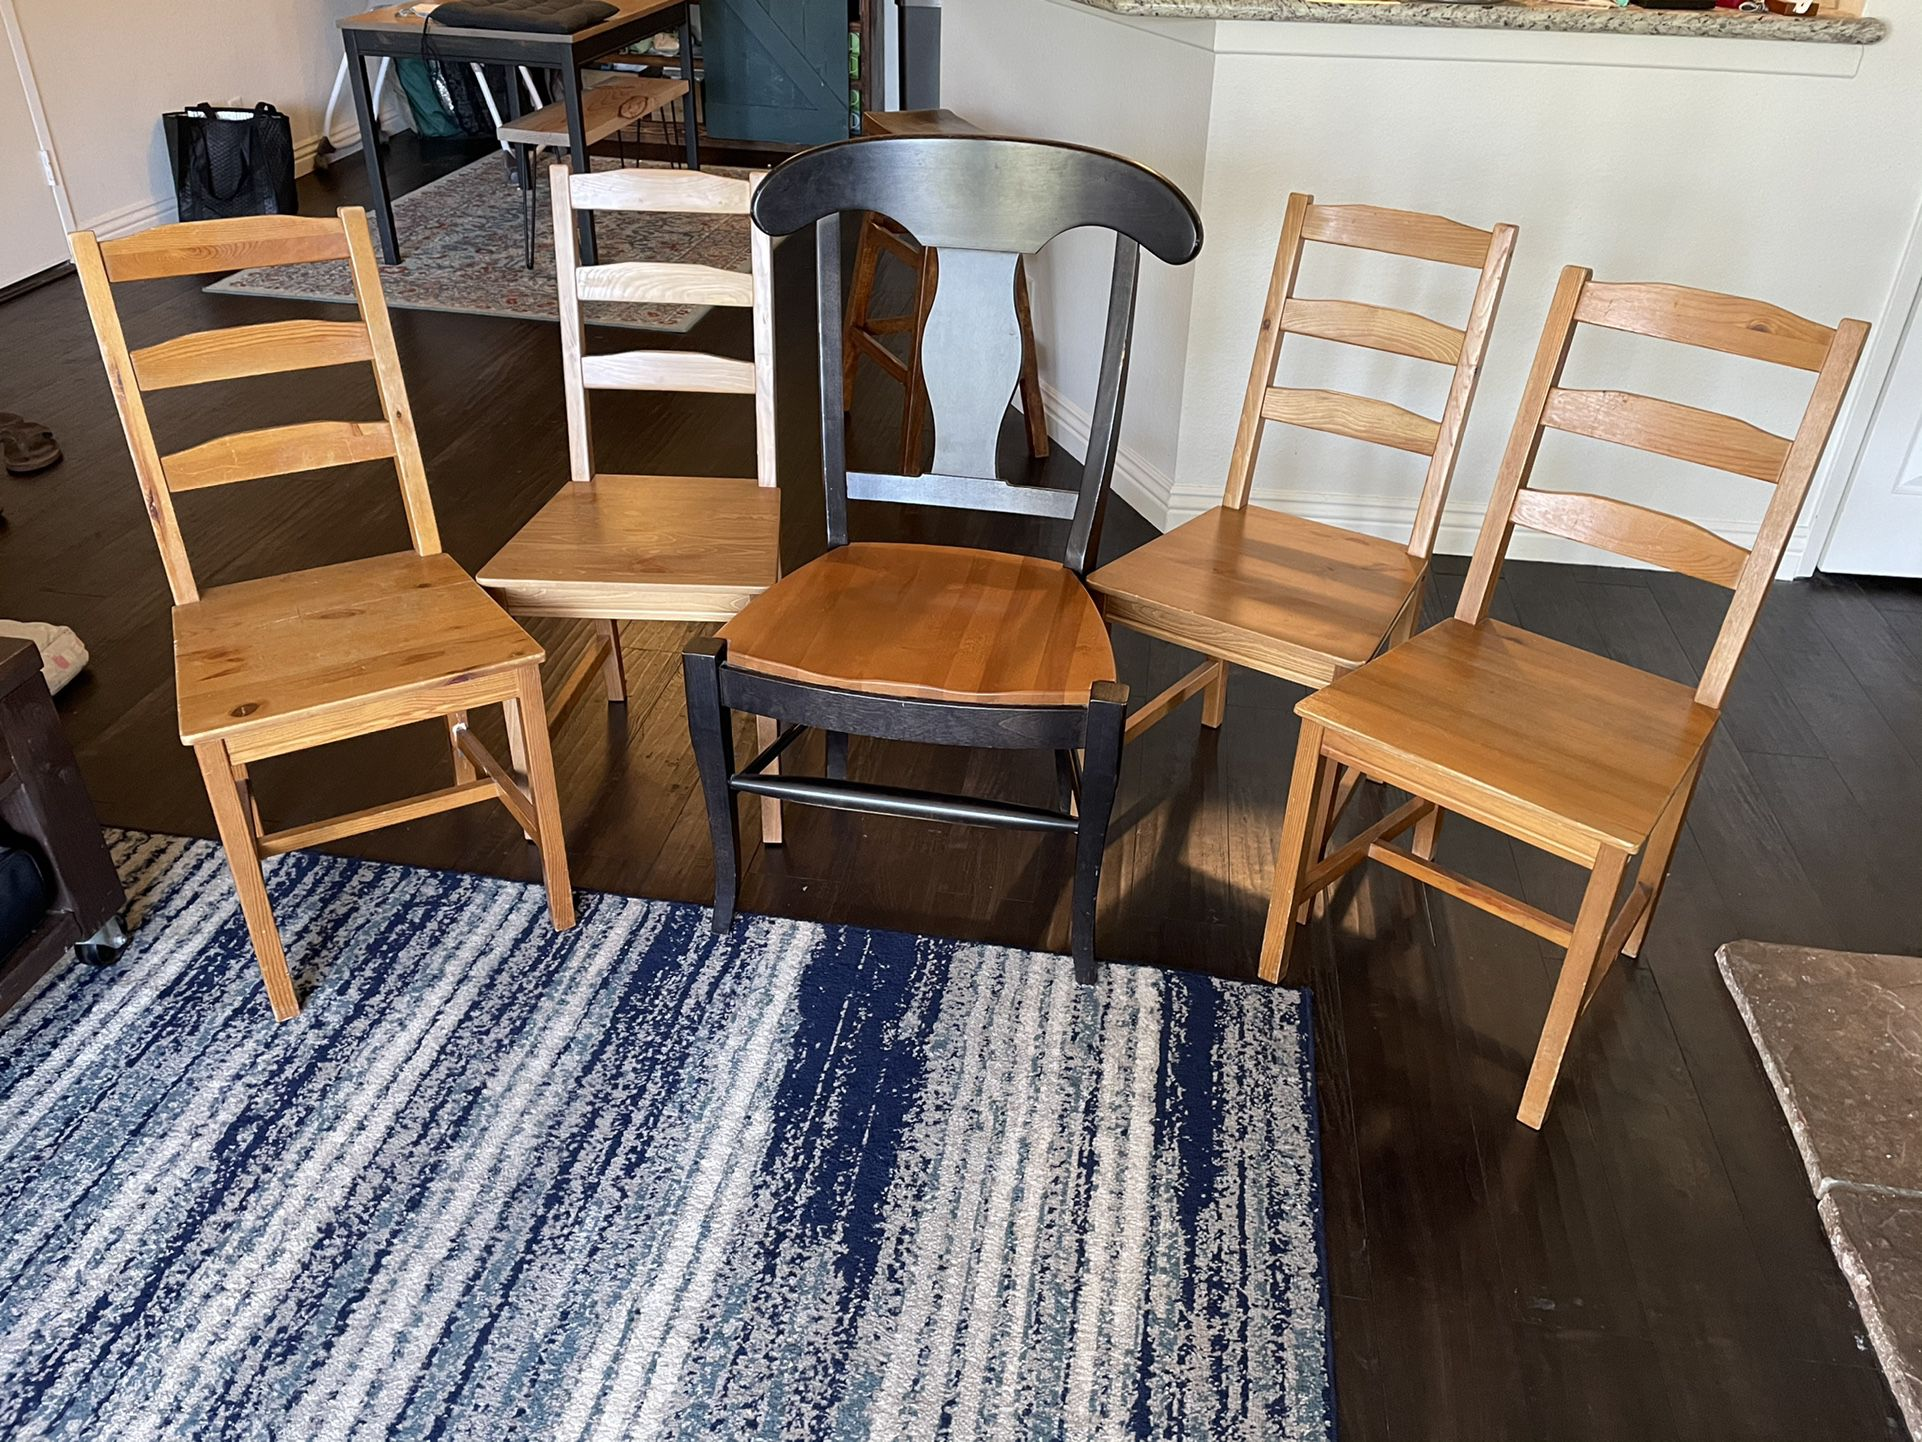 Wood Chair - Just The Middle One